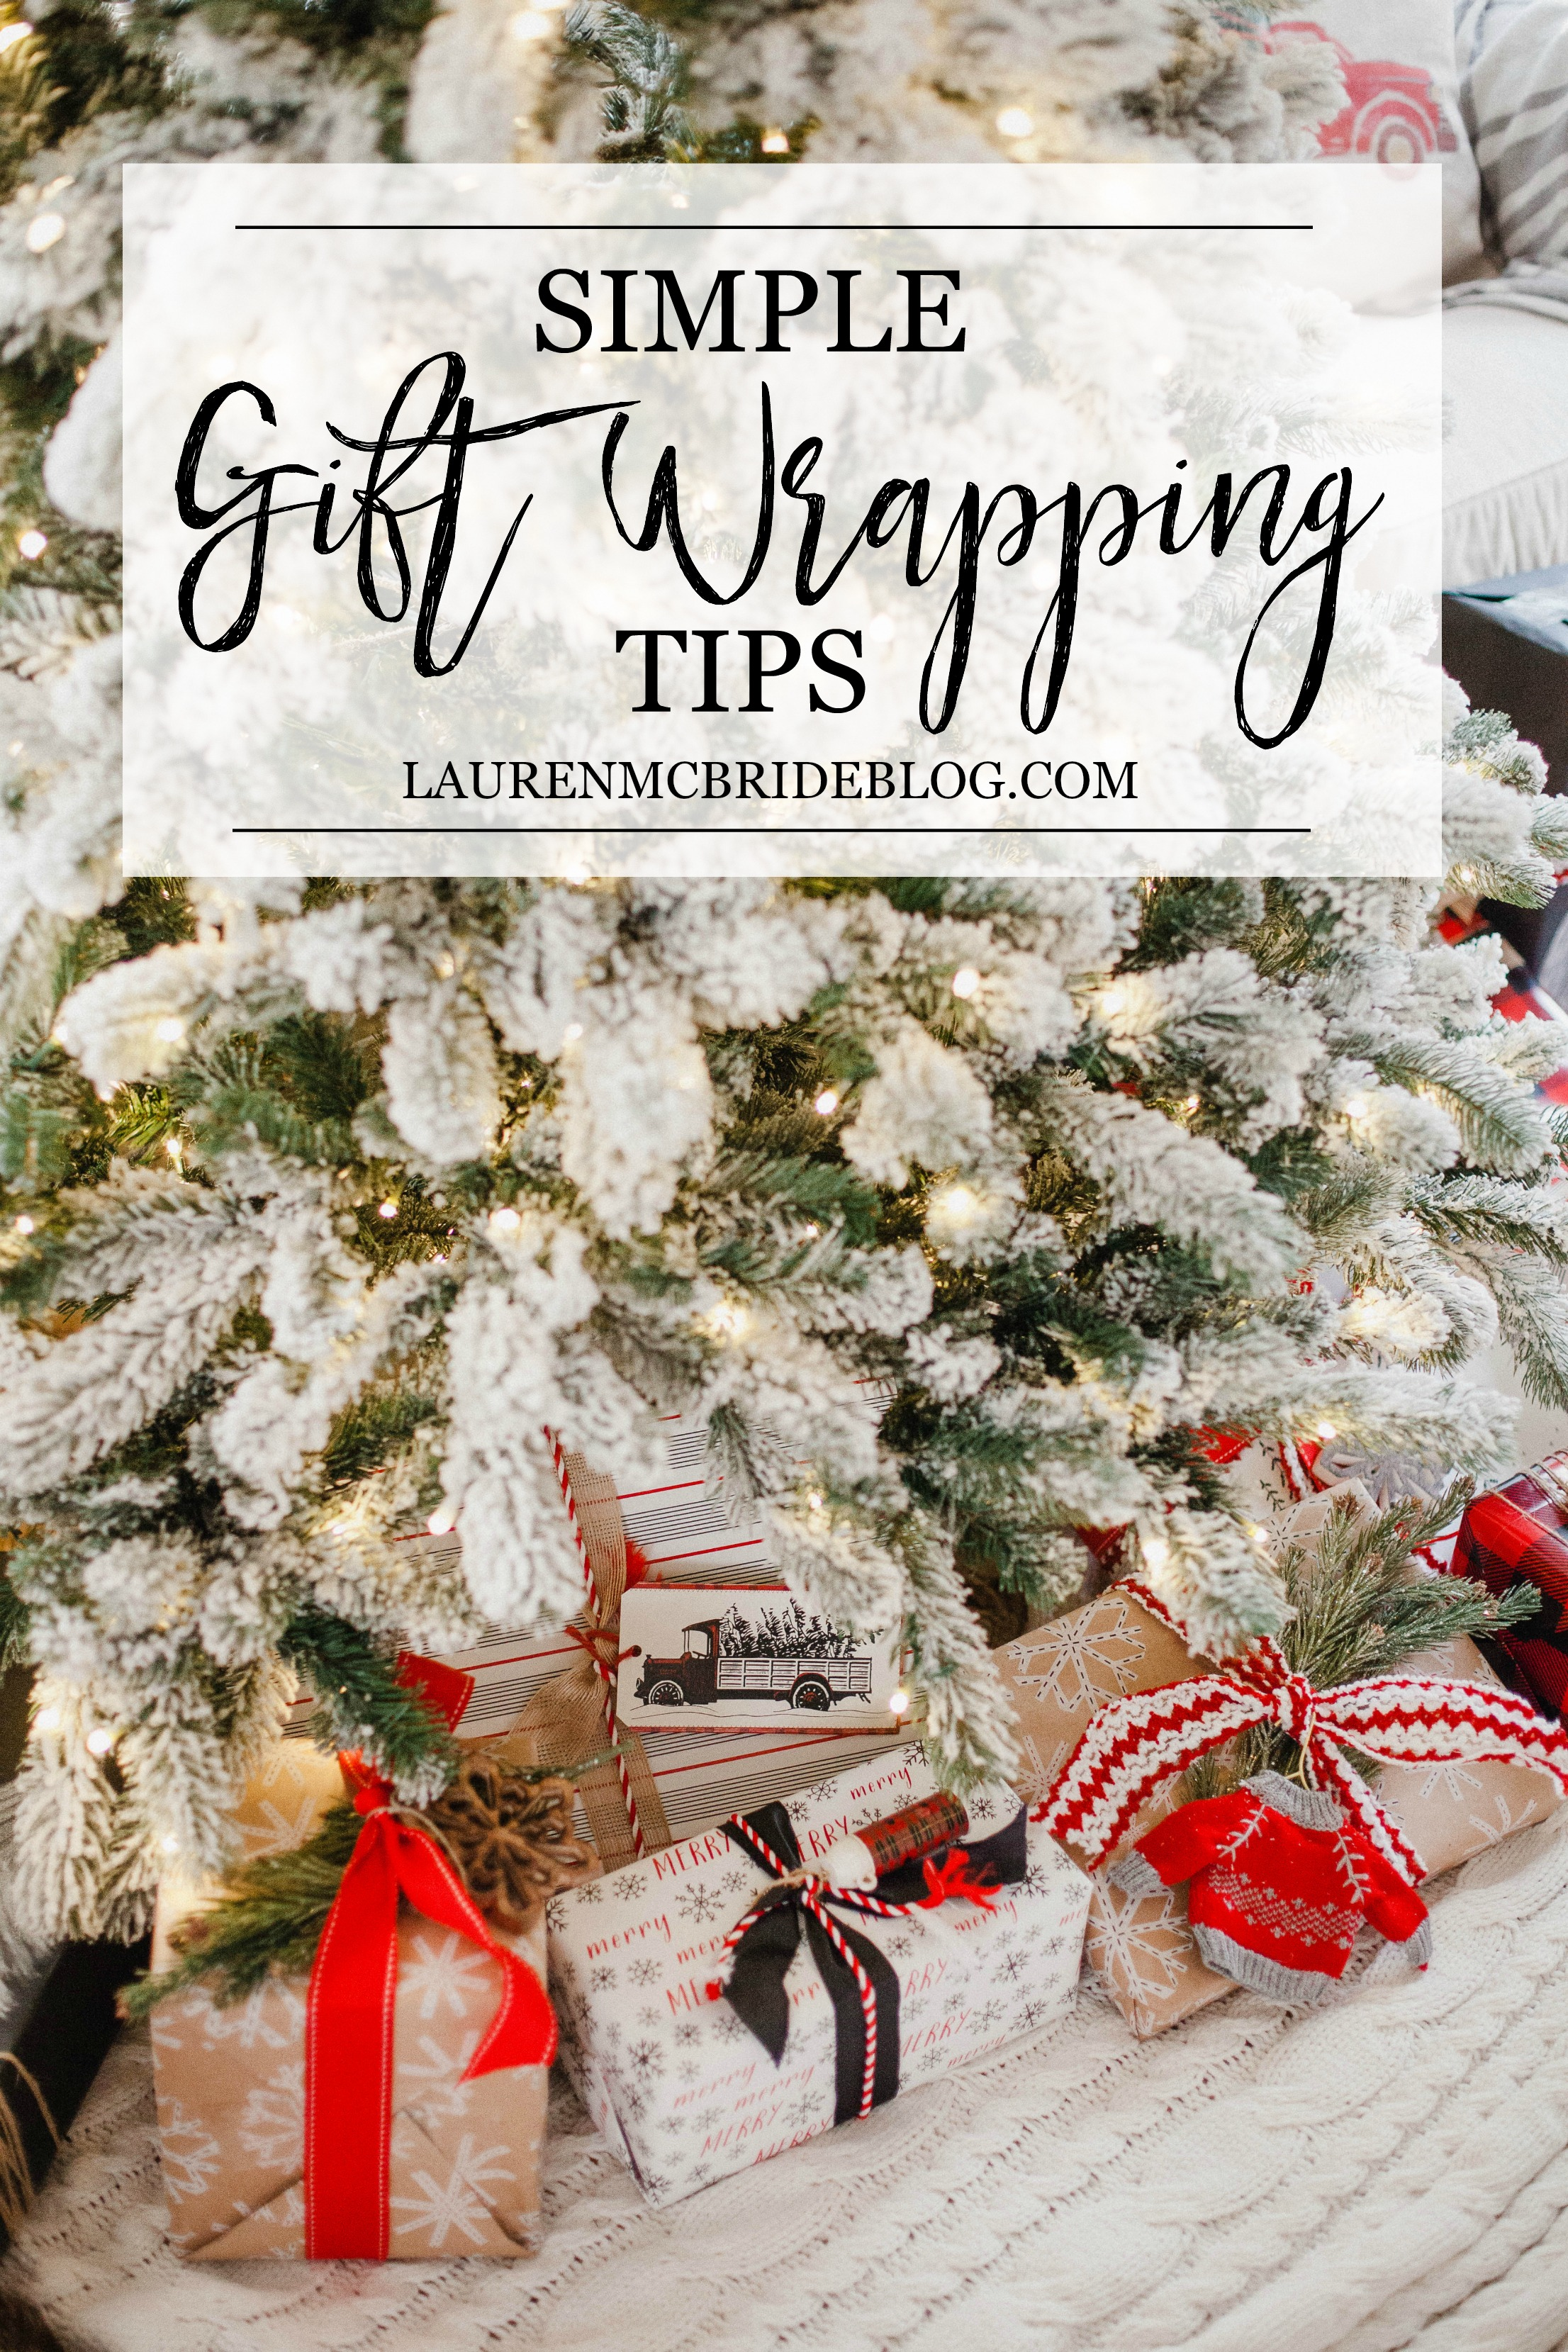 Life and style blogger Lauren McBride shares her Simple Gift Wrapping Tips that will make your holiday gifts stand out among the rest this season.